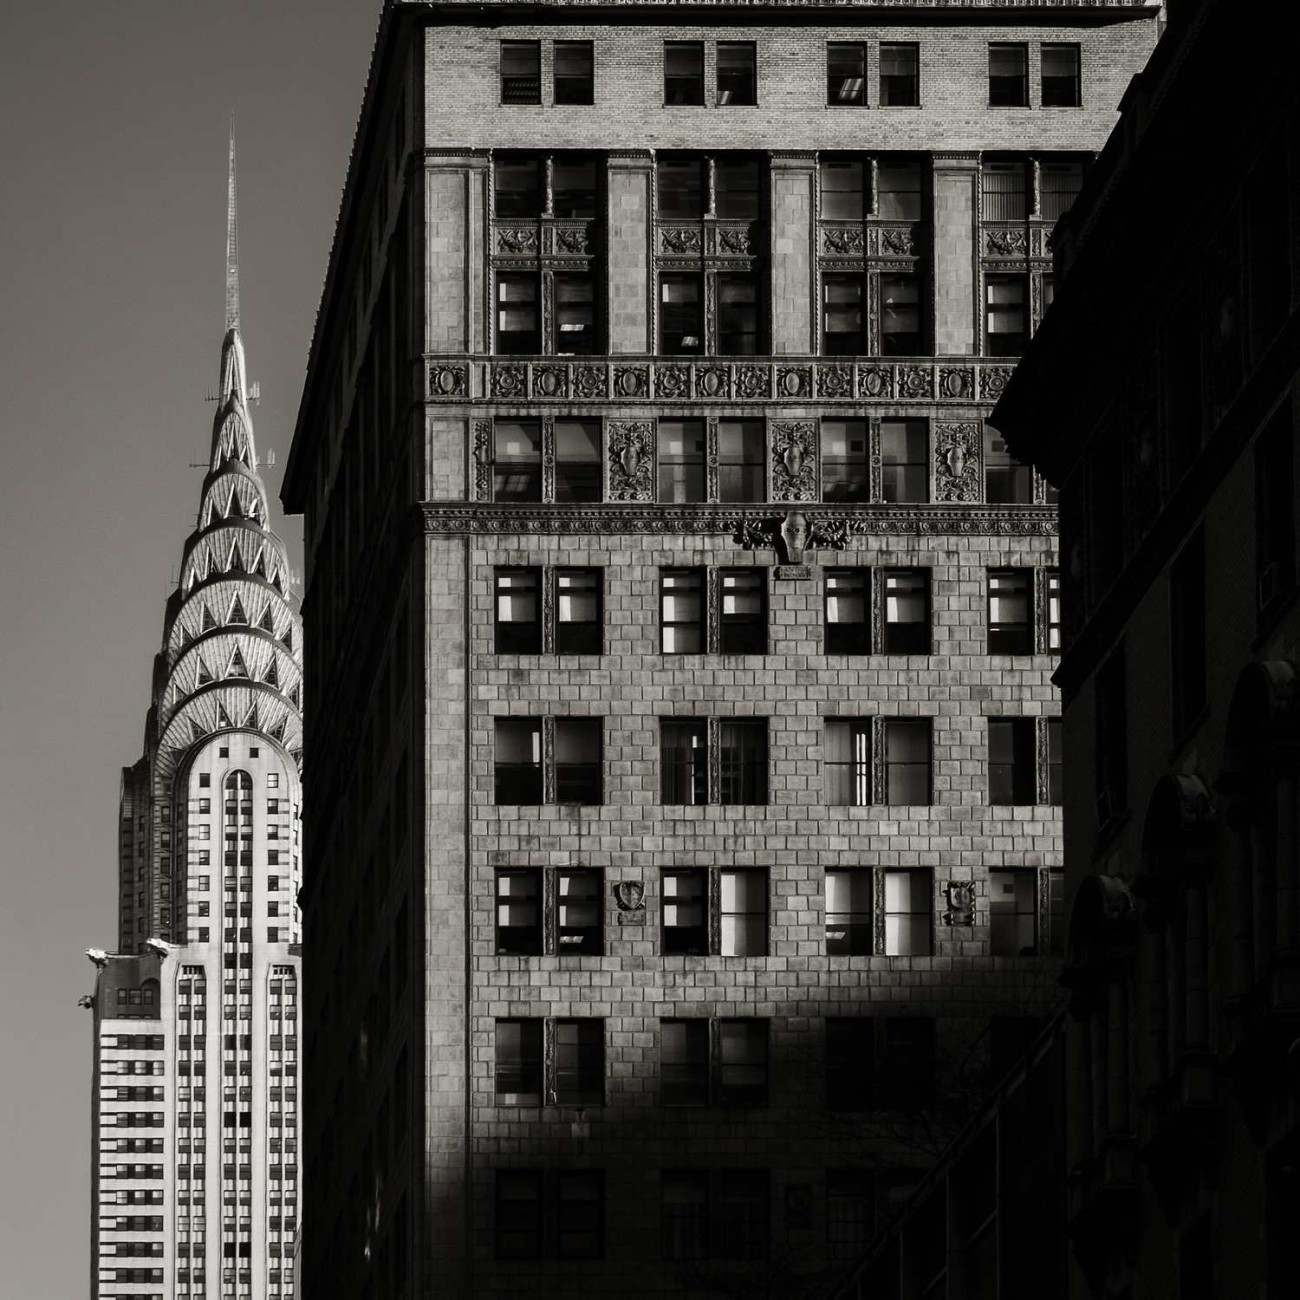 Chrysler Bulding and shadows, New York, 2015